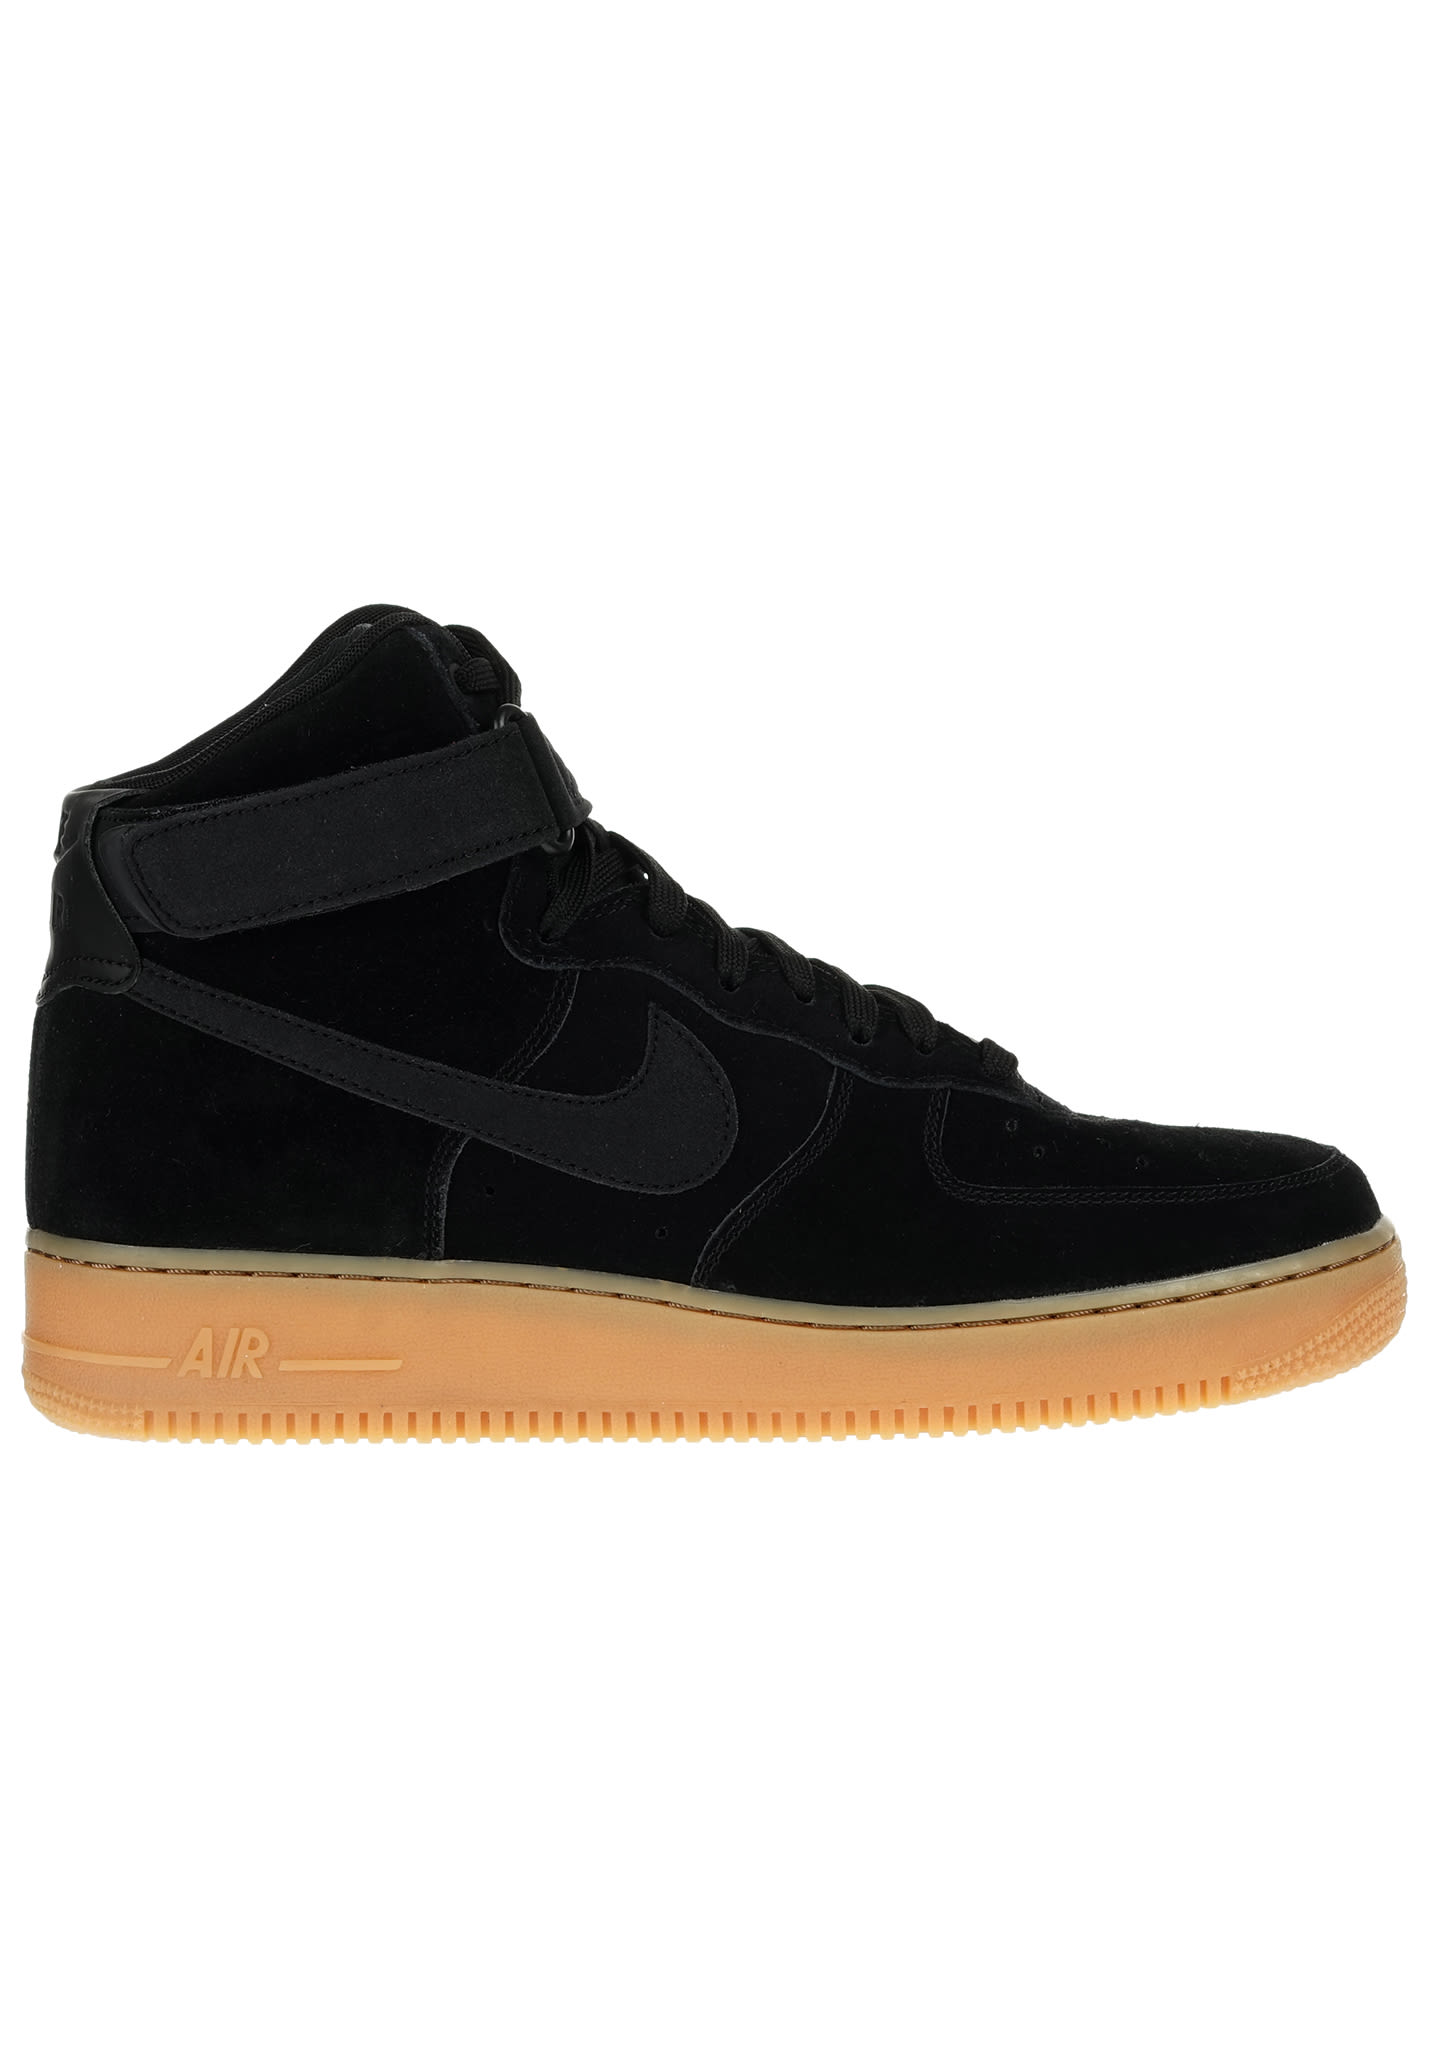 discount sale 24730 fe3a0 NIKE SPORTSWEAR Air Force 1 High  07 Lv8 Suede - Baskets pour Homme - Noir  - Planet Sports